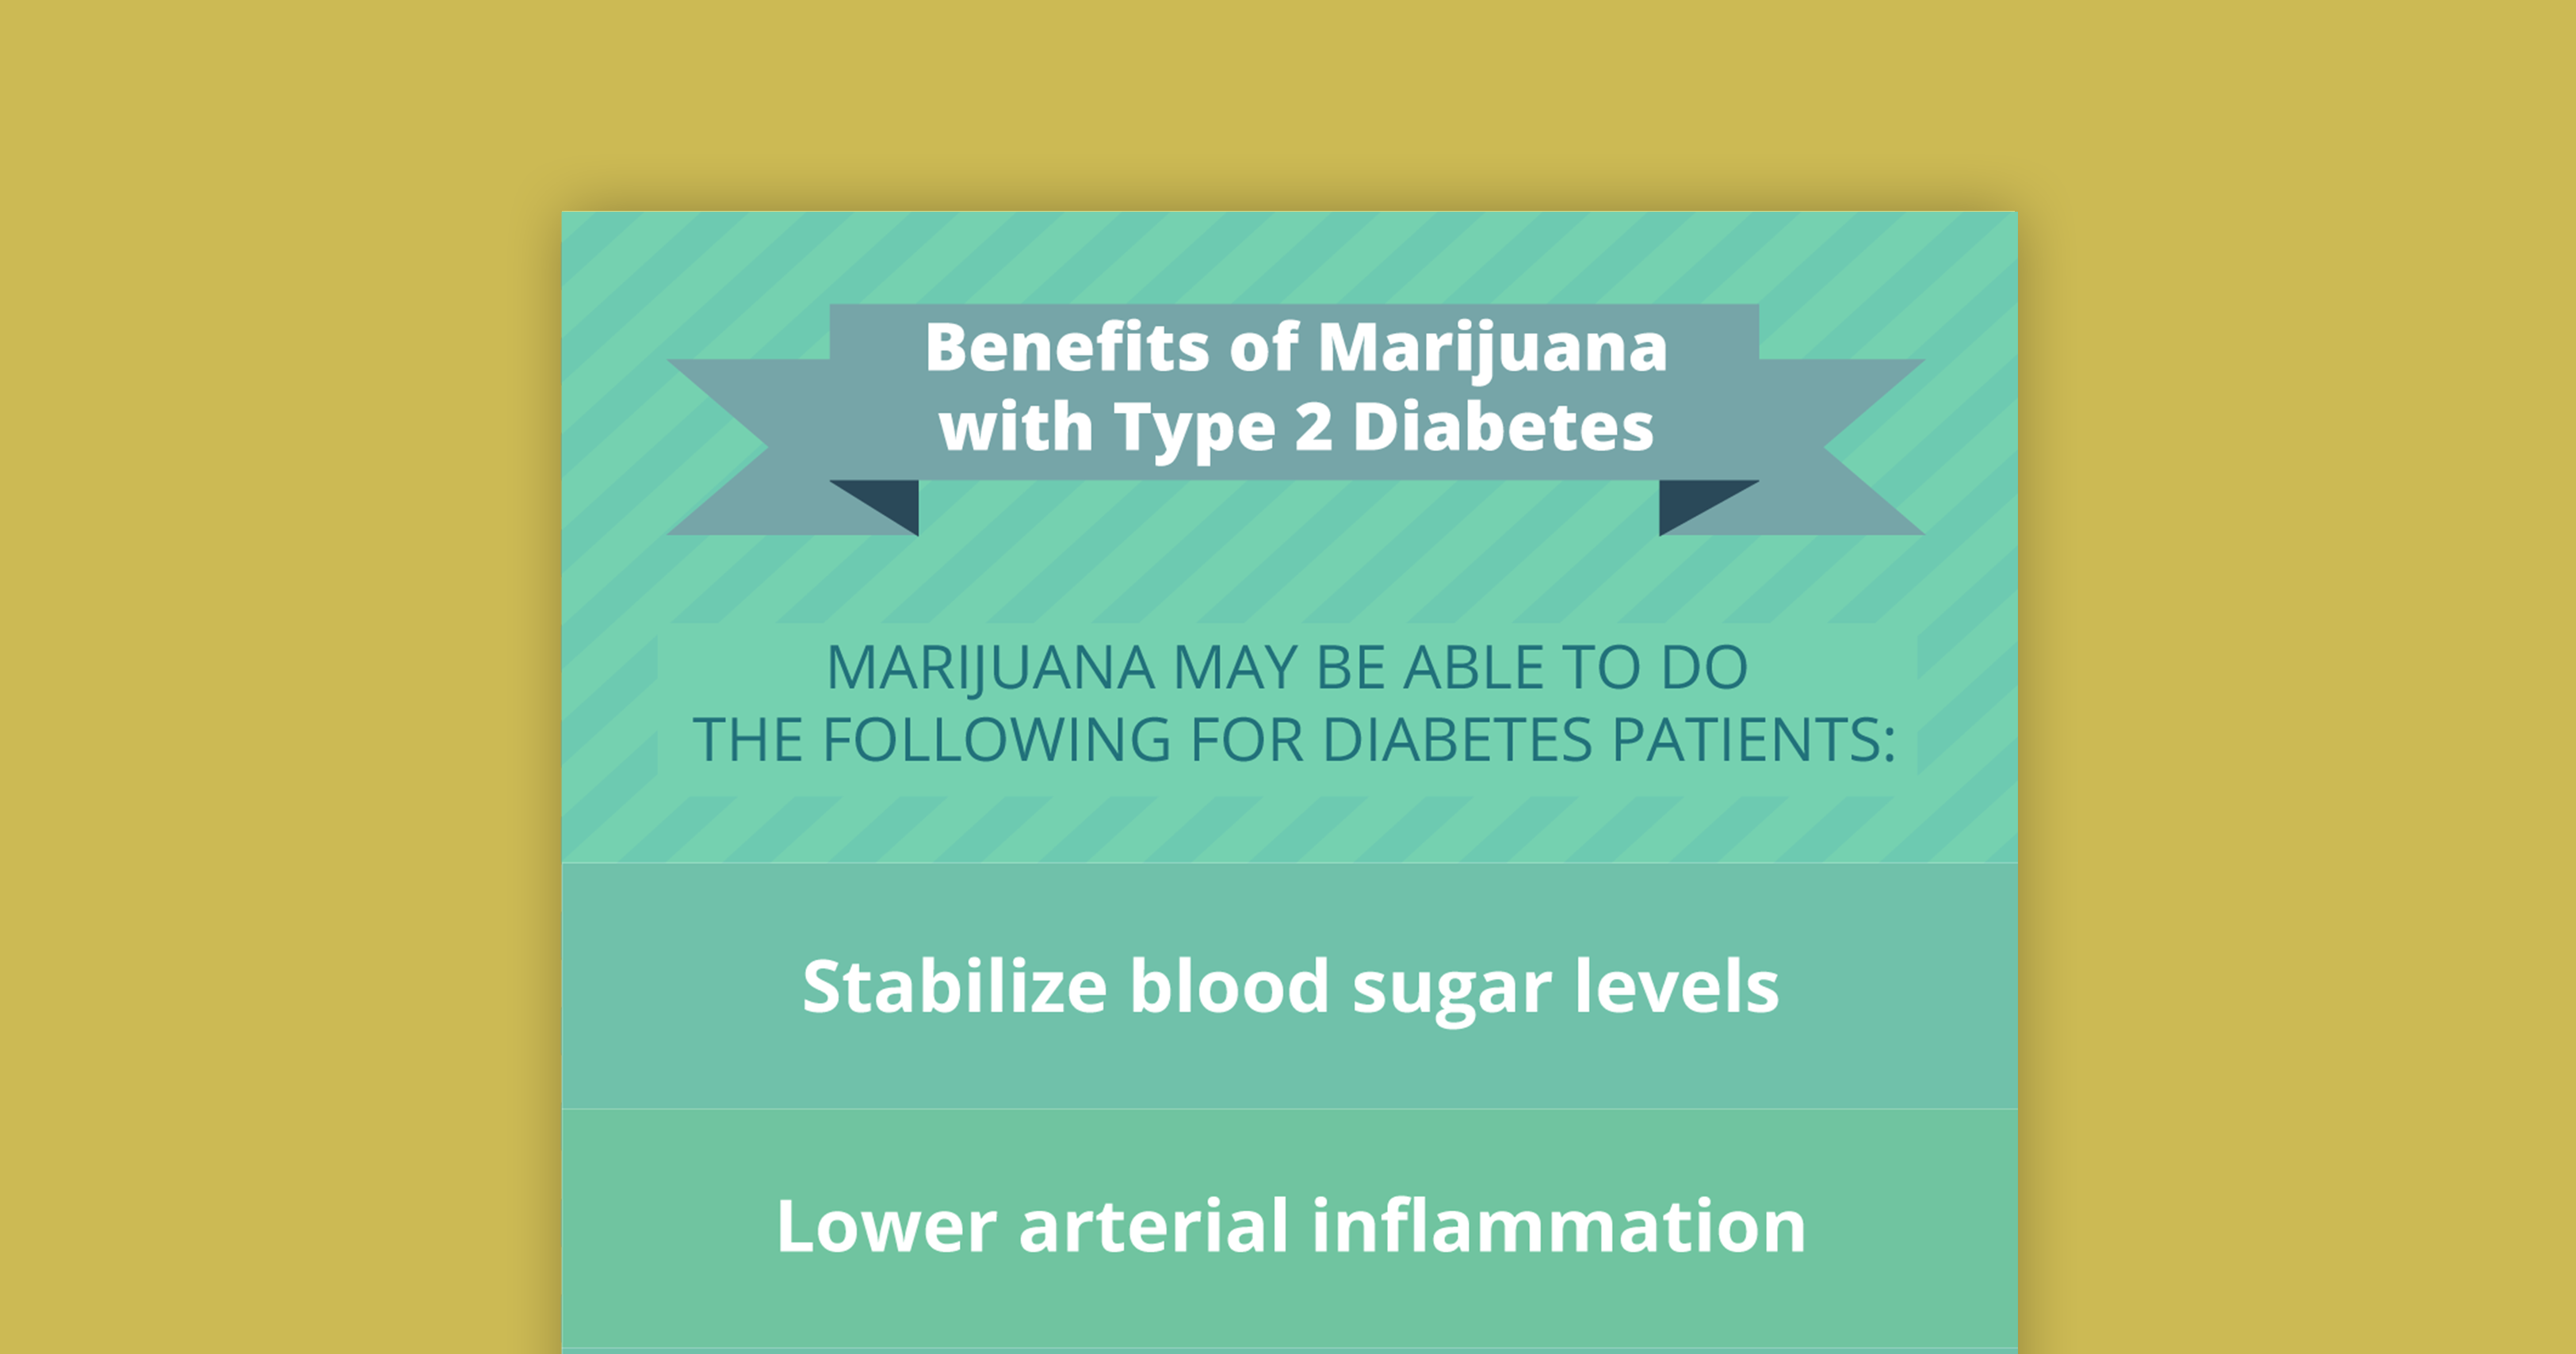 thumbnail benefits of marijuana type 2 diabetes